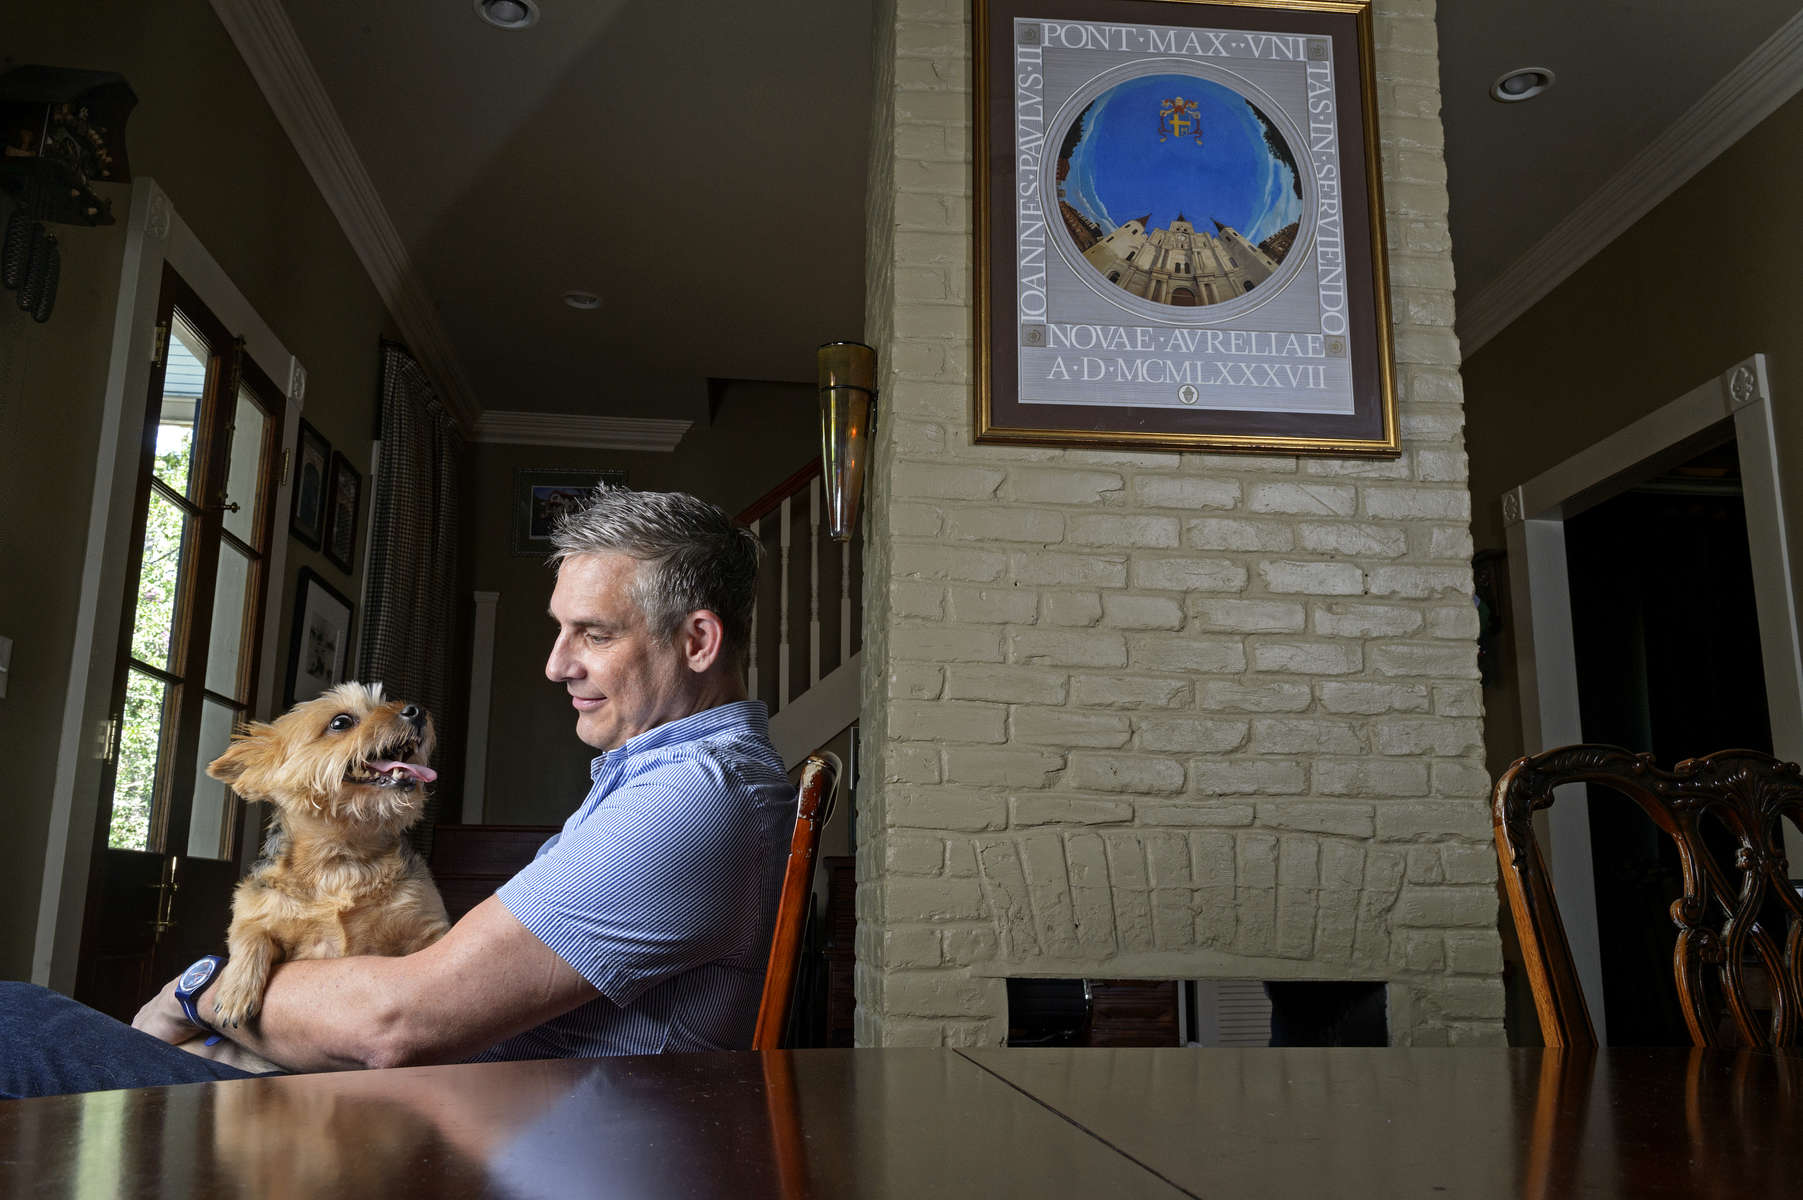 Kevin Bourgeois sits with his Norwich Terrier, Pippa, with a framed poster, from the papal visit of Pope John Paul II to New Orleans from 1987, seen behind him at his home in New Orleans, La. Tuesday, Aug. 6, 2019.